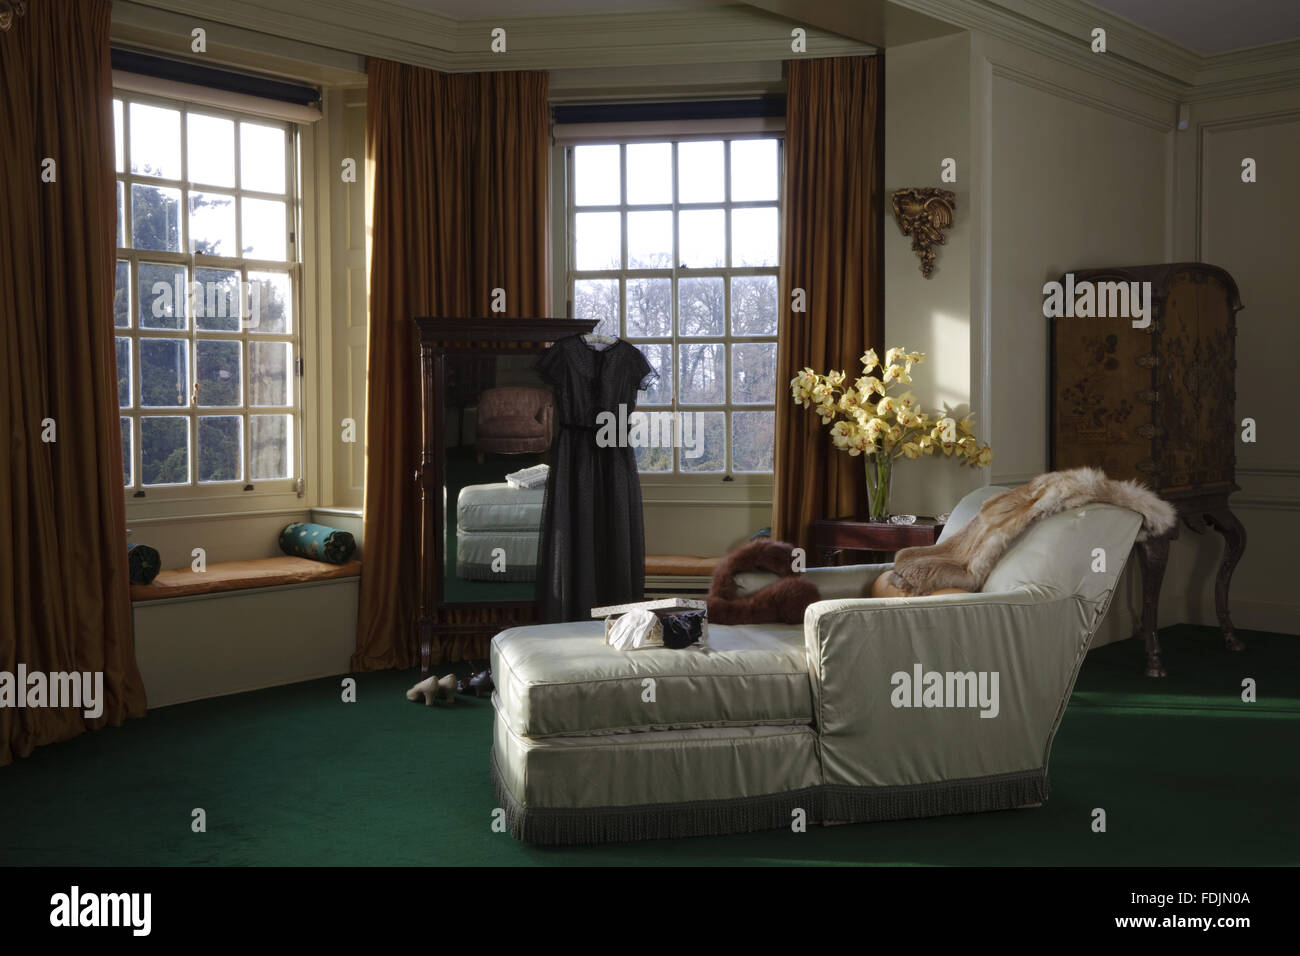 Lady Bedroom The Recliner And Full Length Mirror Draped With Furs And A Dress